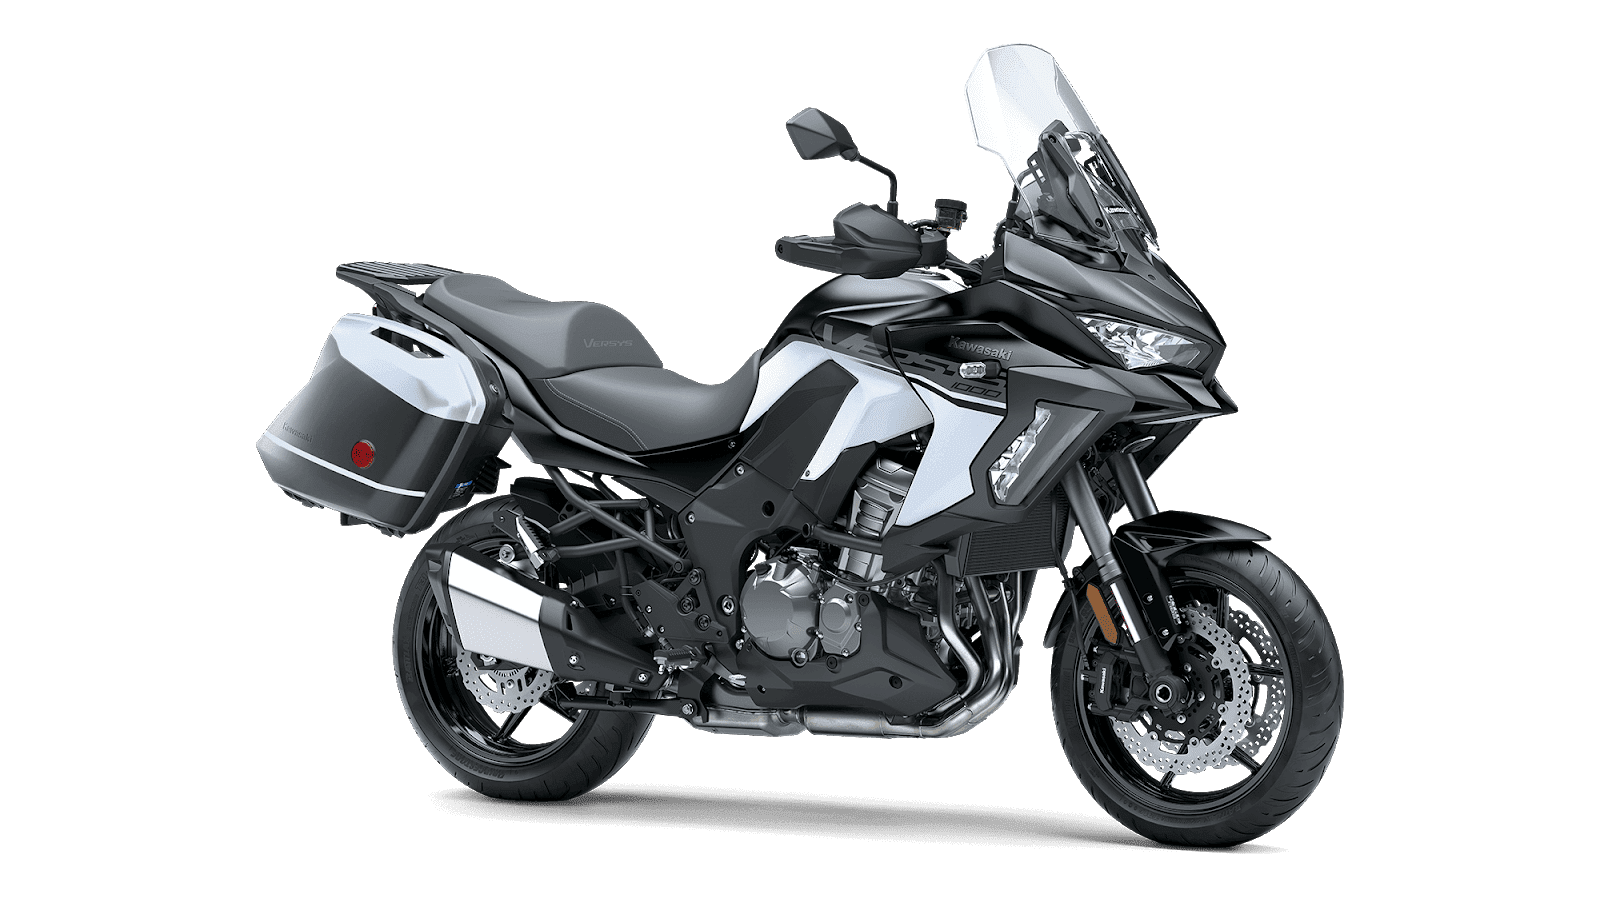 KAWASAKI VERSYS 1000 2019 And Special Edition 1000 SE Announced